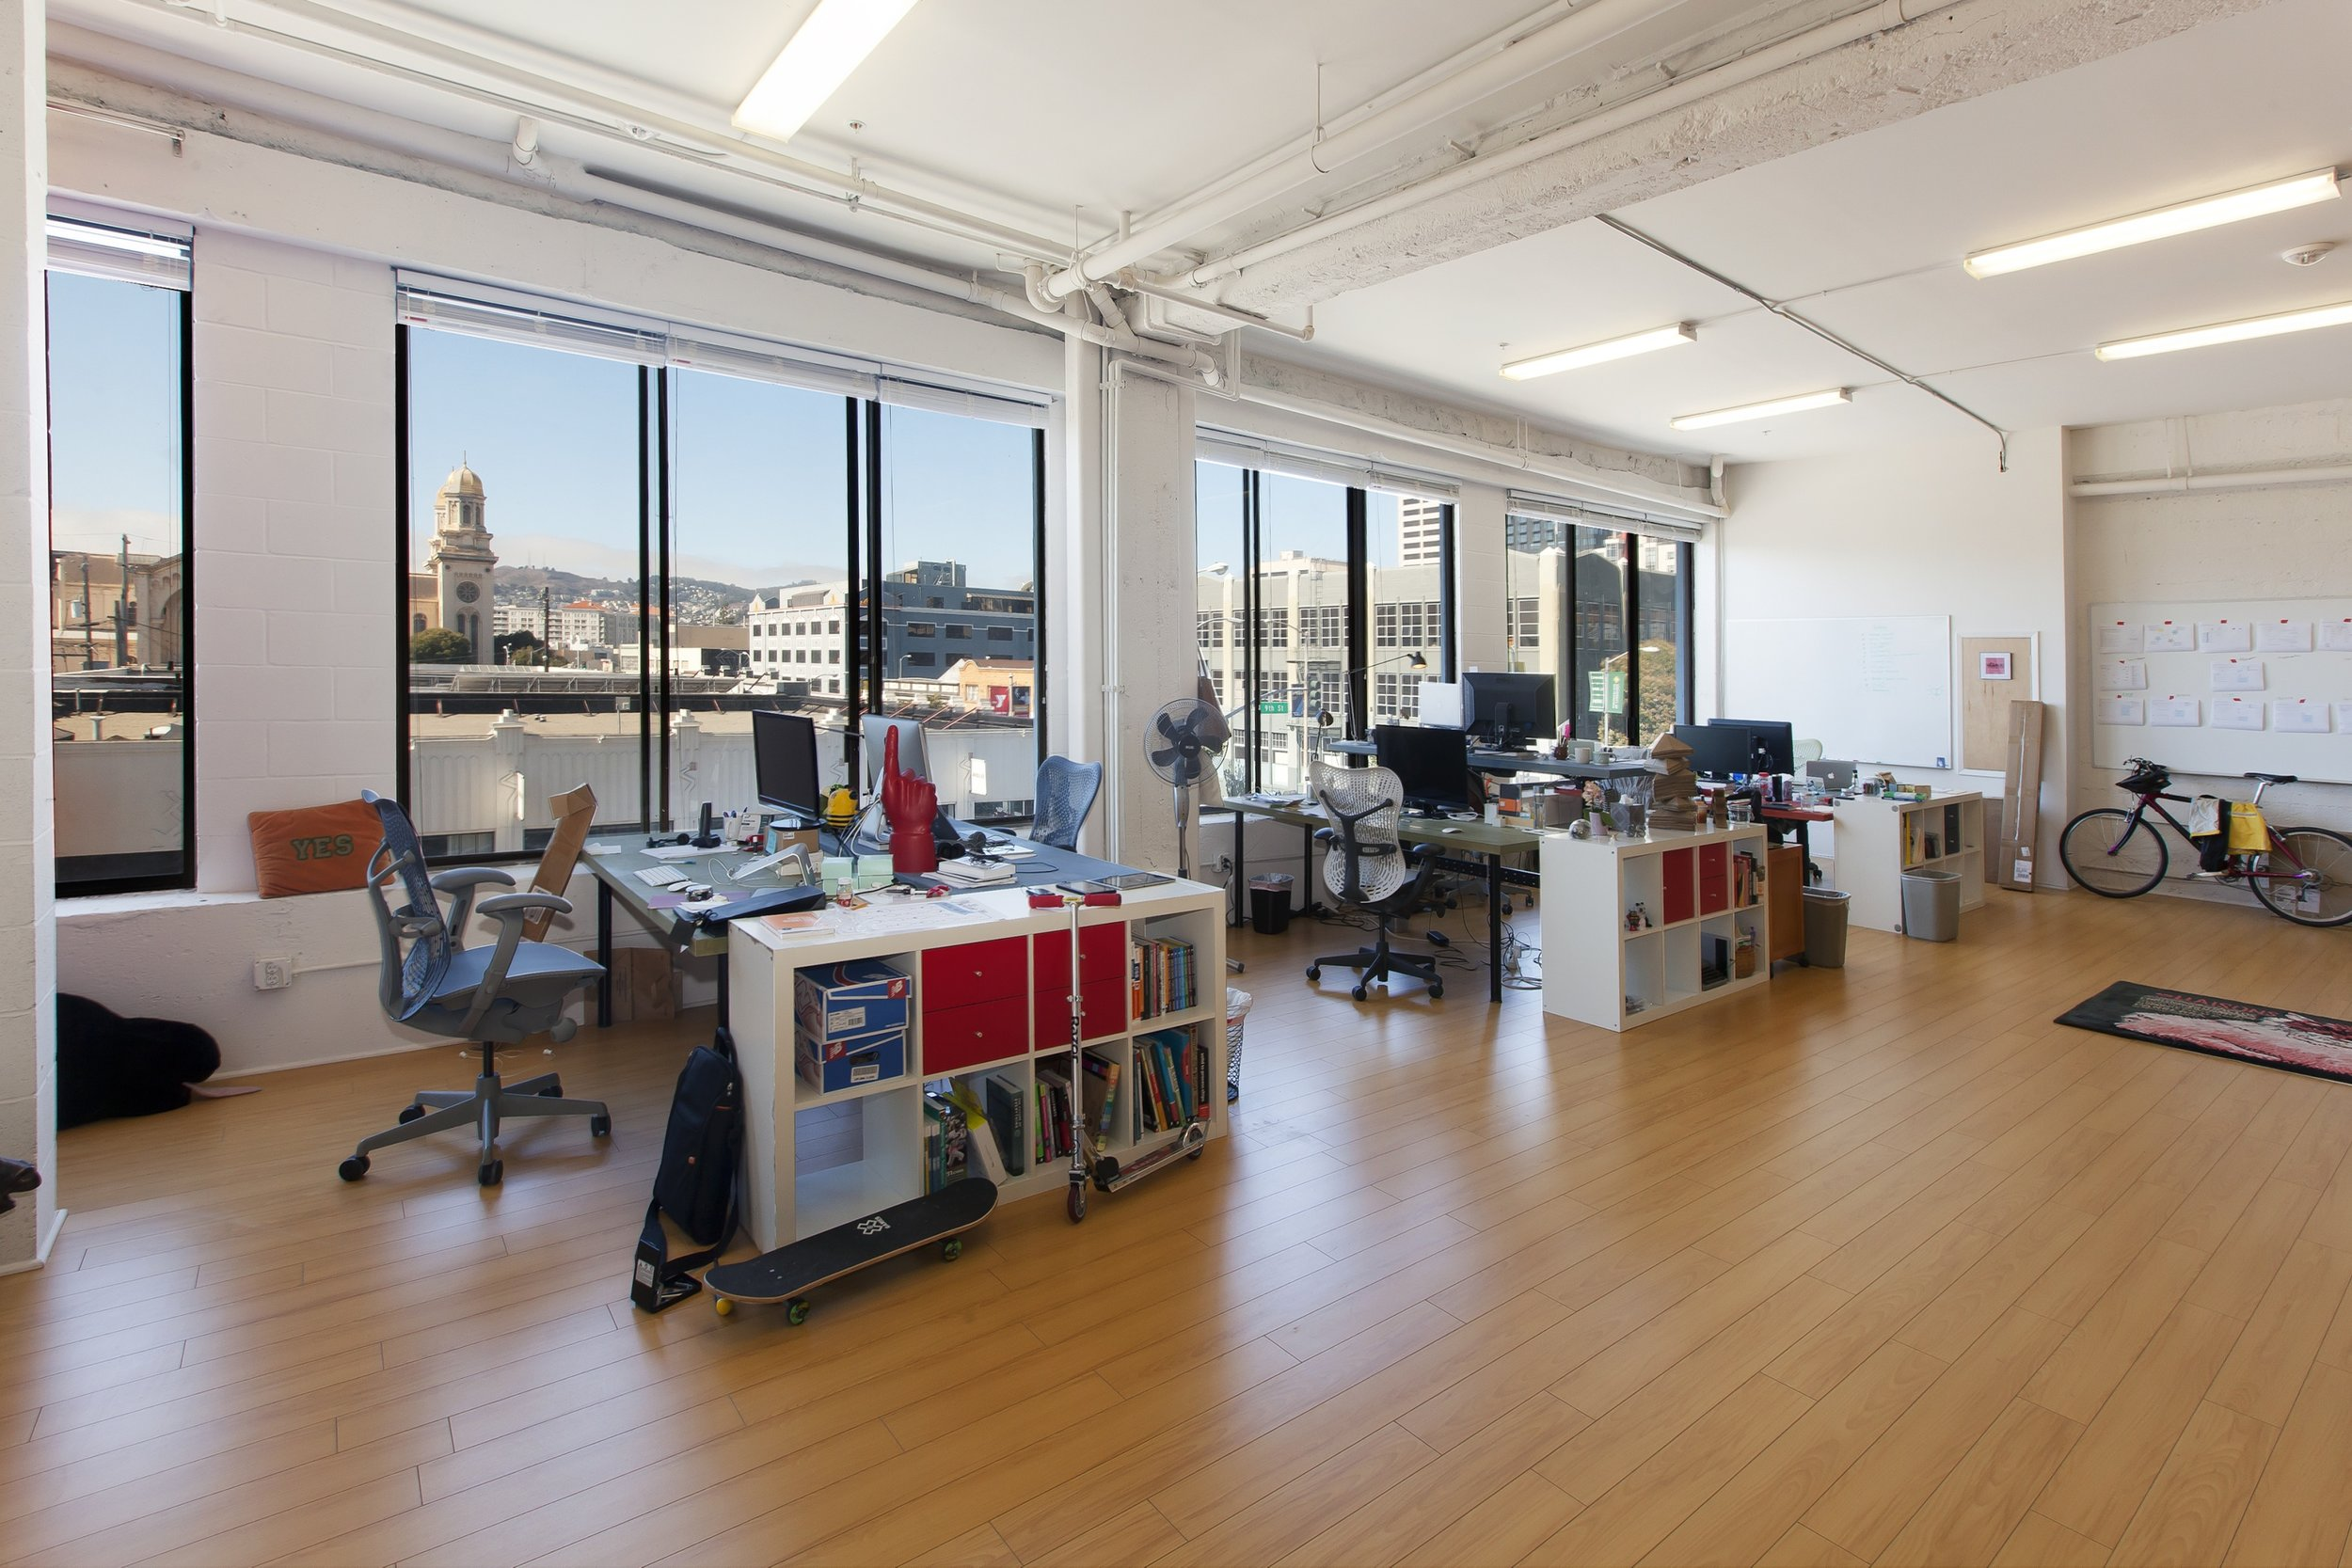 LEASED     209 9TH ST 3RD FLOOR     3,647 SF